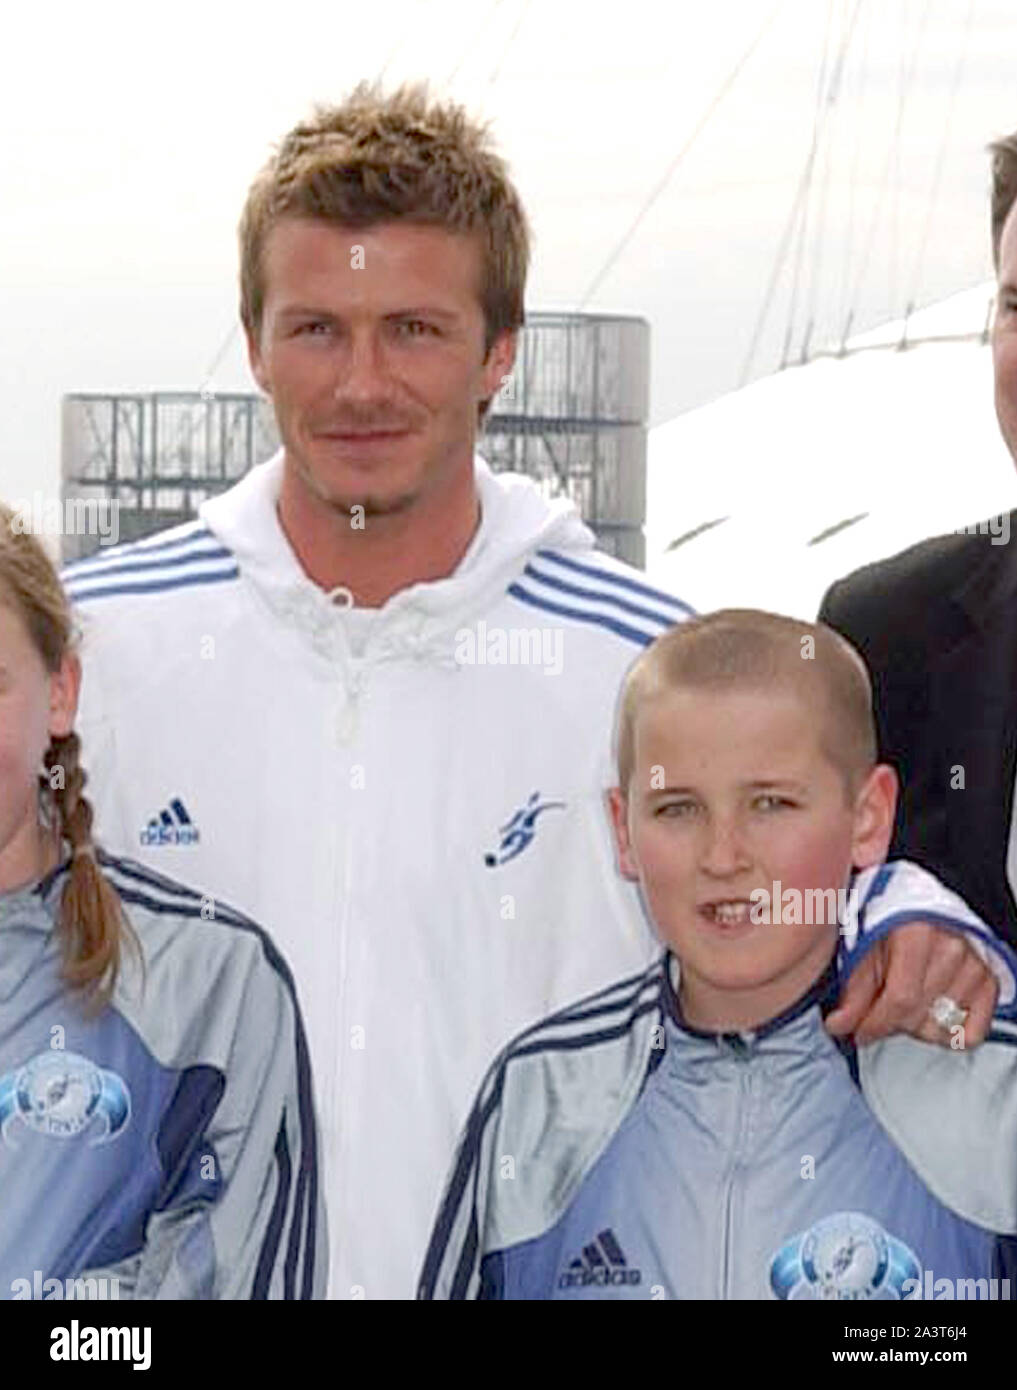 Photo Must Be Credited C Alpha 057343 14 03 2005 David Beckham With Harry Kane As A Young Boy At The Beckham Soccer Academy Launch At The Trinity Buoy In East London Stock Photo Alamy